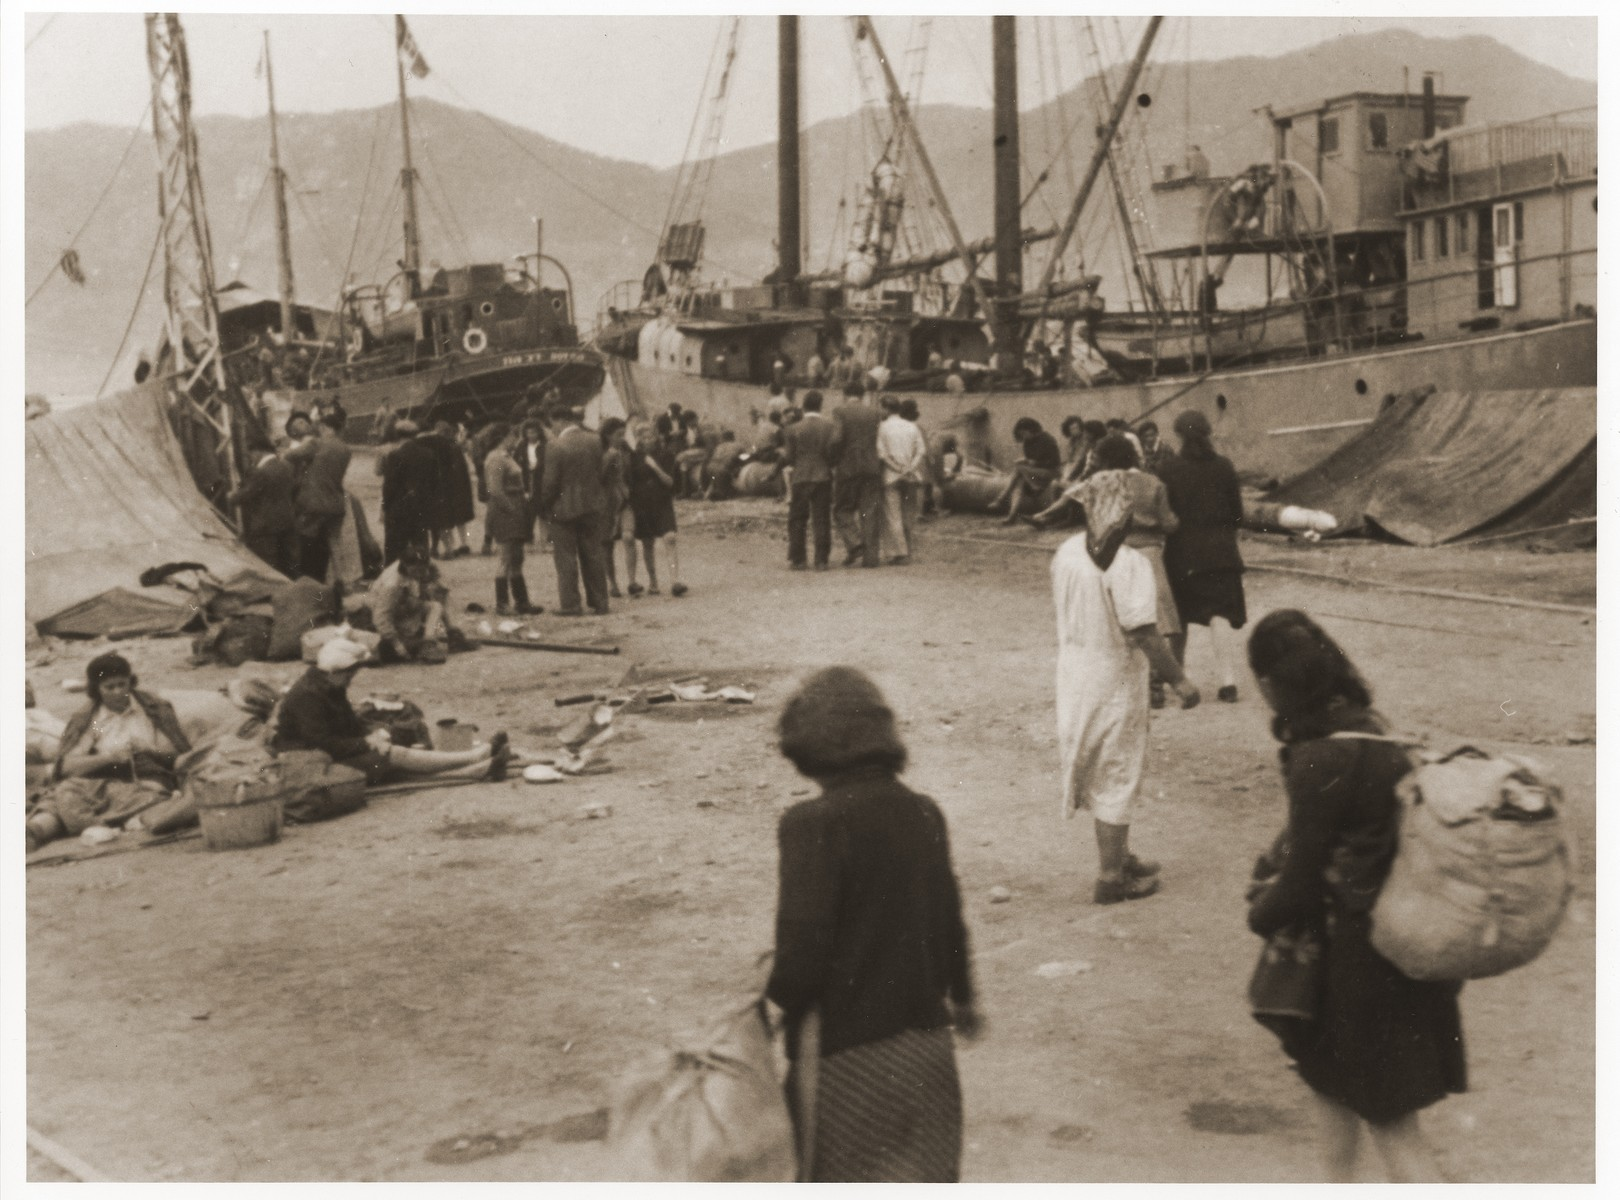 Jewish DPs camp out at the port of La Spezia while waiting for permission to sail to Palestine.